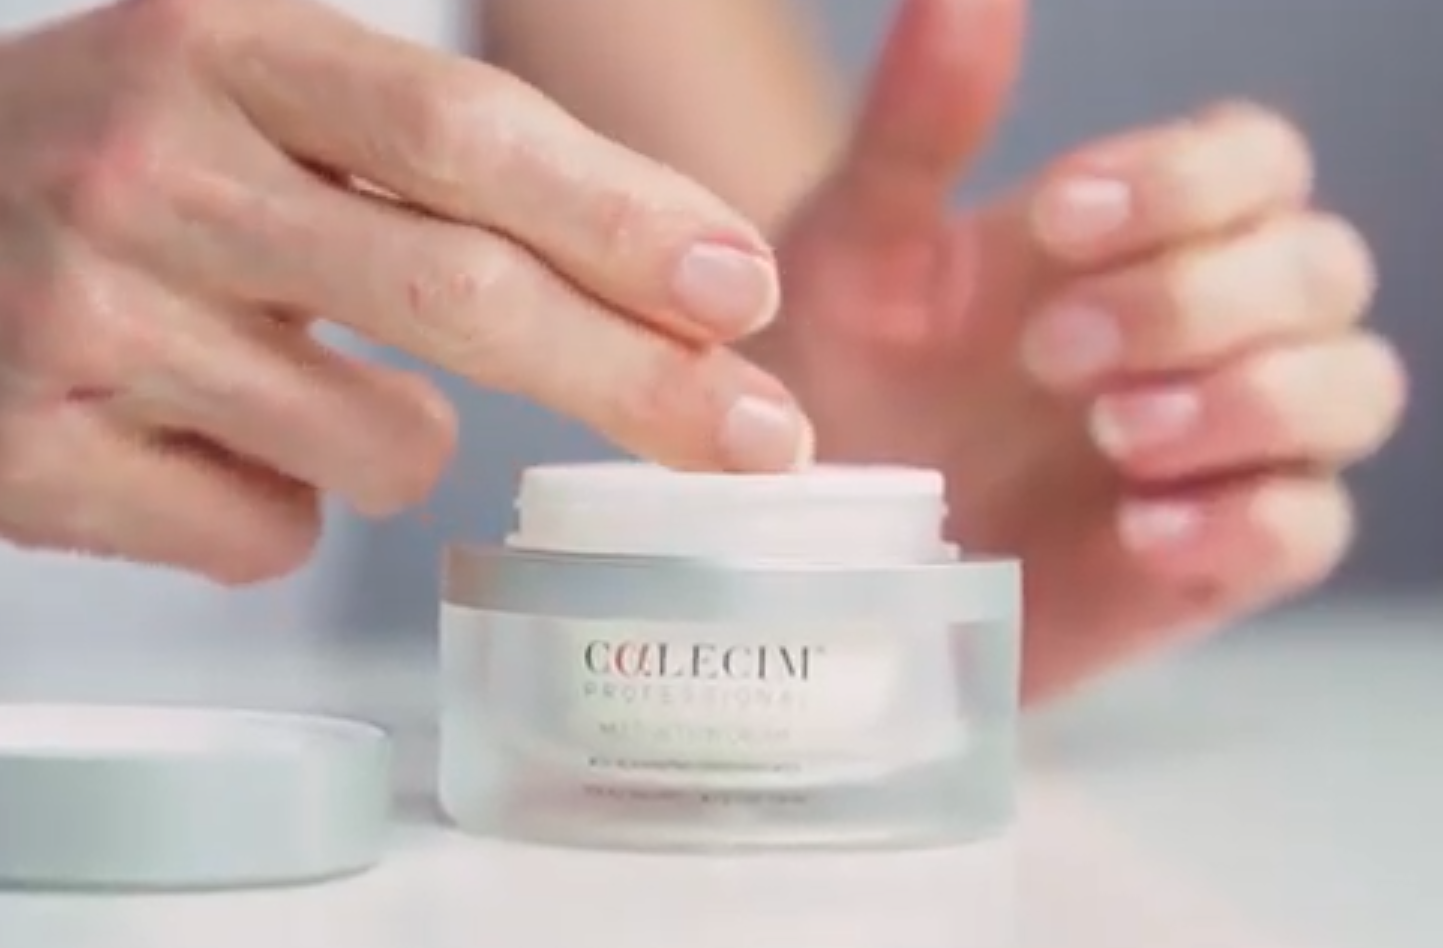 Woman dipping fingers into tub of skin cream enhanced with growth factor ingredients